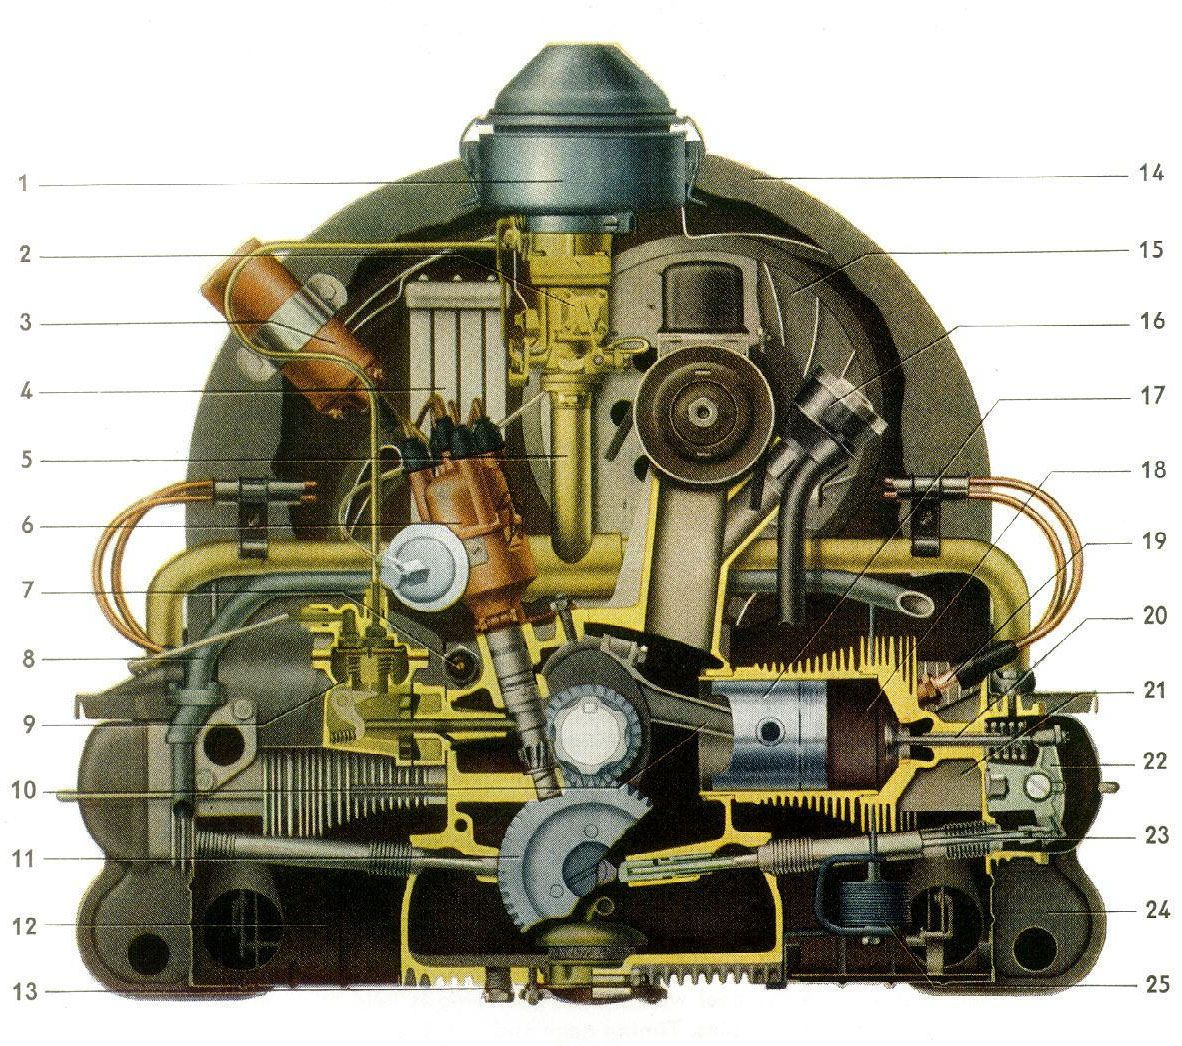 1600cc Vw Engine Diagram Top Leader Wiring Site 72 Super Beetle Bus Diagrams Rh Casamario De Specs